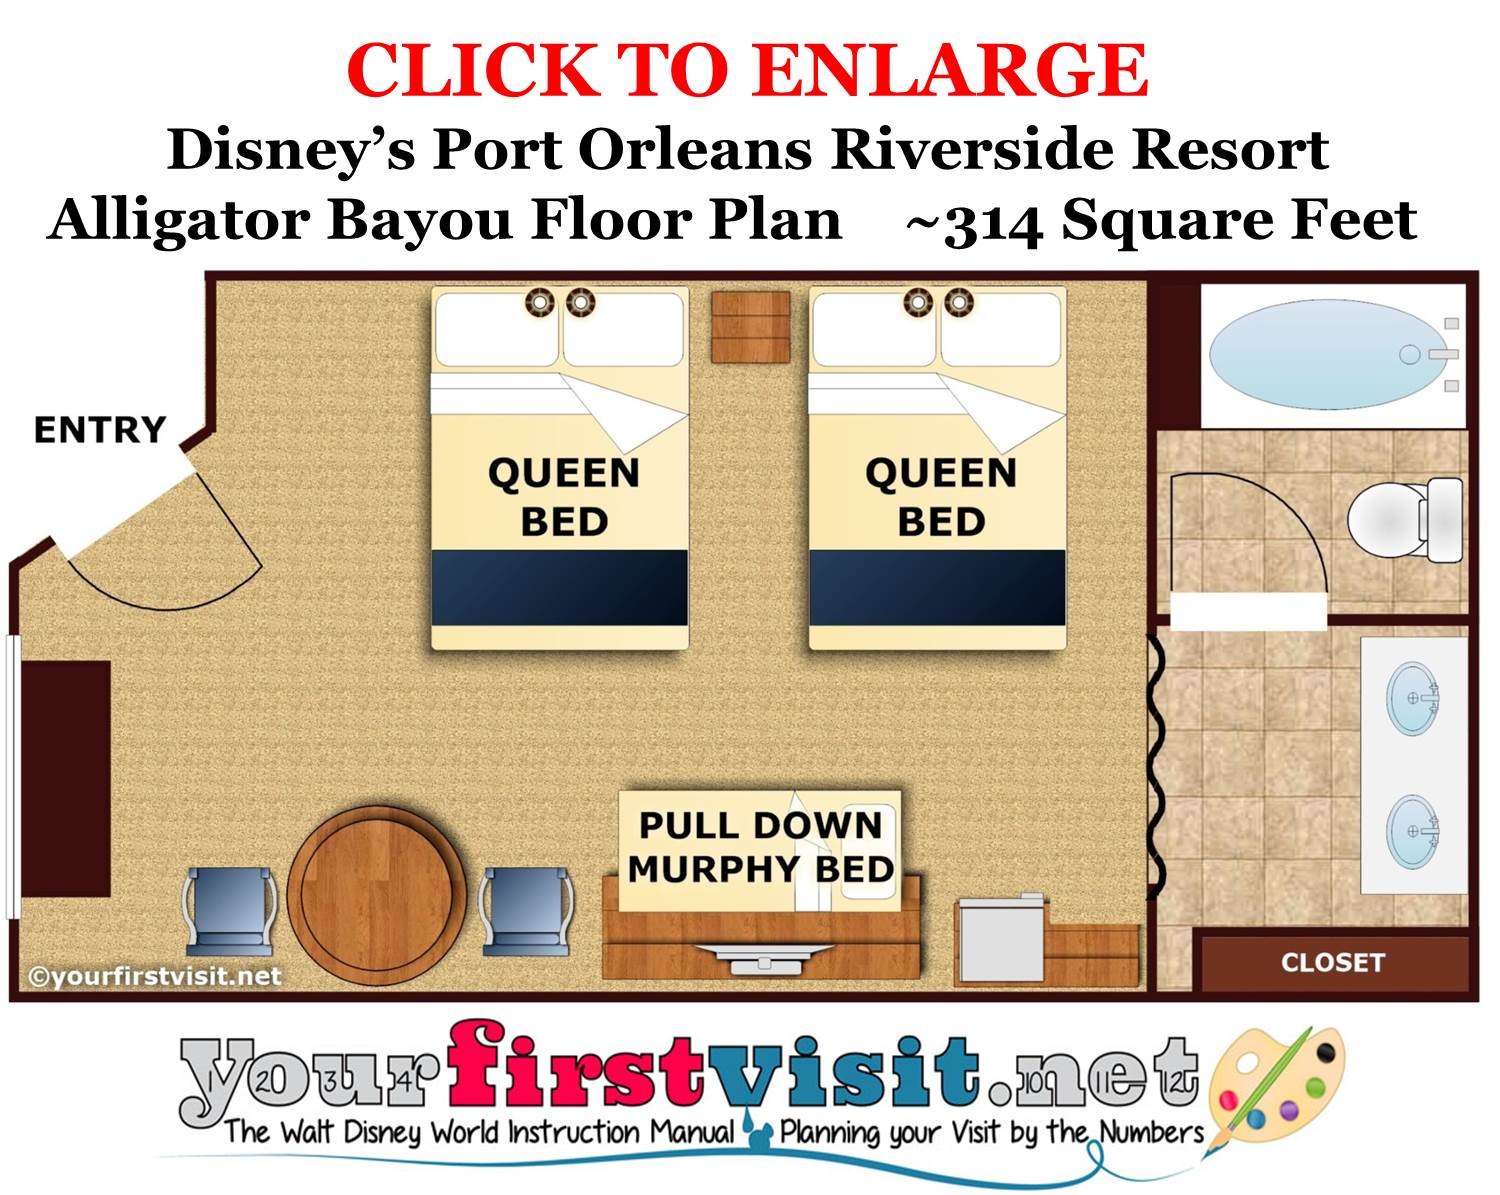 Floor Plan Alligator Bayou 5 Person Room Disney's Port Orleans Riverside Resort from yourfirstvisit.net